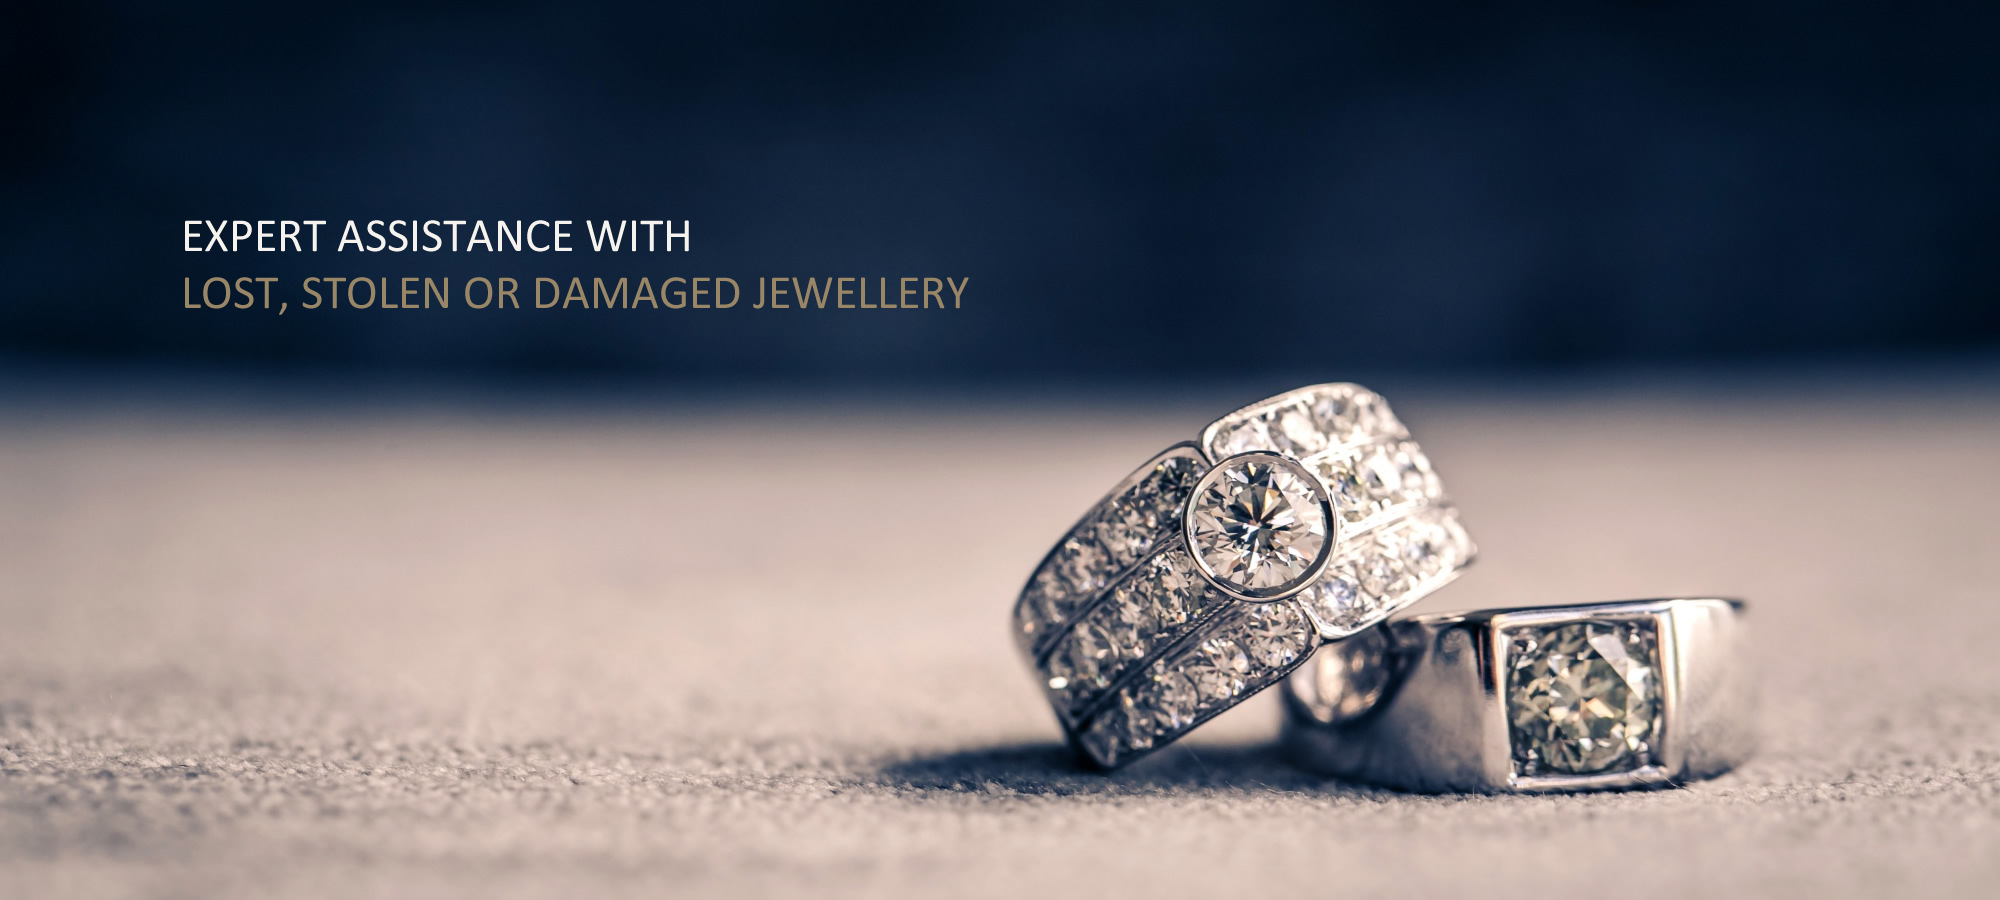 expert assistance with lost, stolen or damaged jewellery